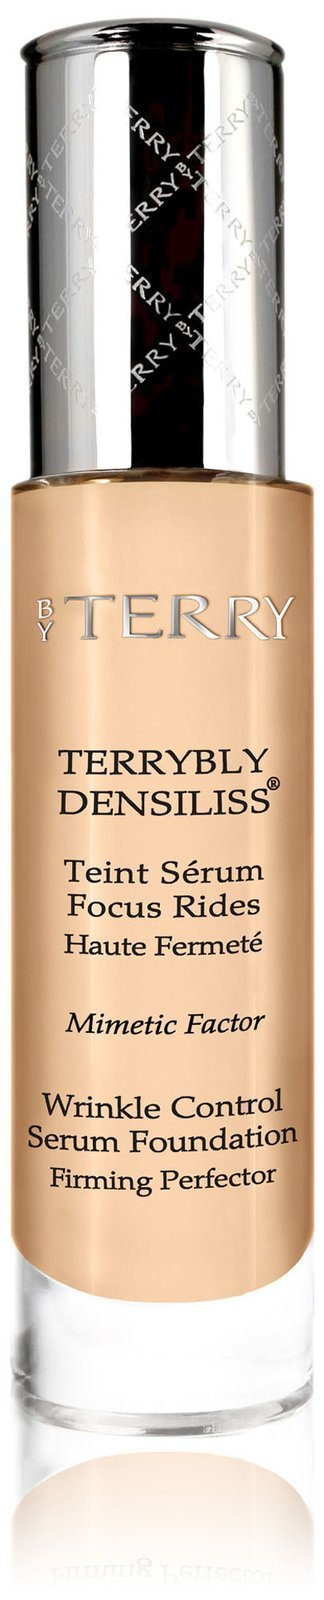 By Terry Terrybly Densiliss Wrinkle Control Serum Foundation, #2 Cream Ivory, 1 Ounce